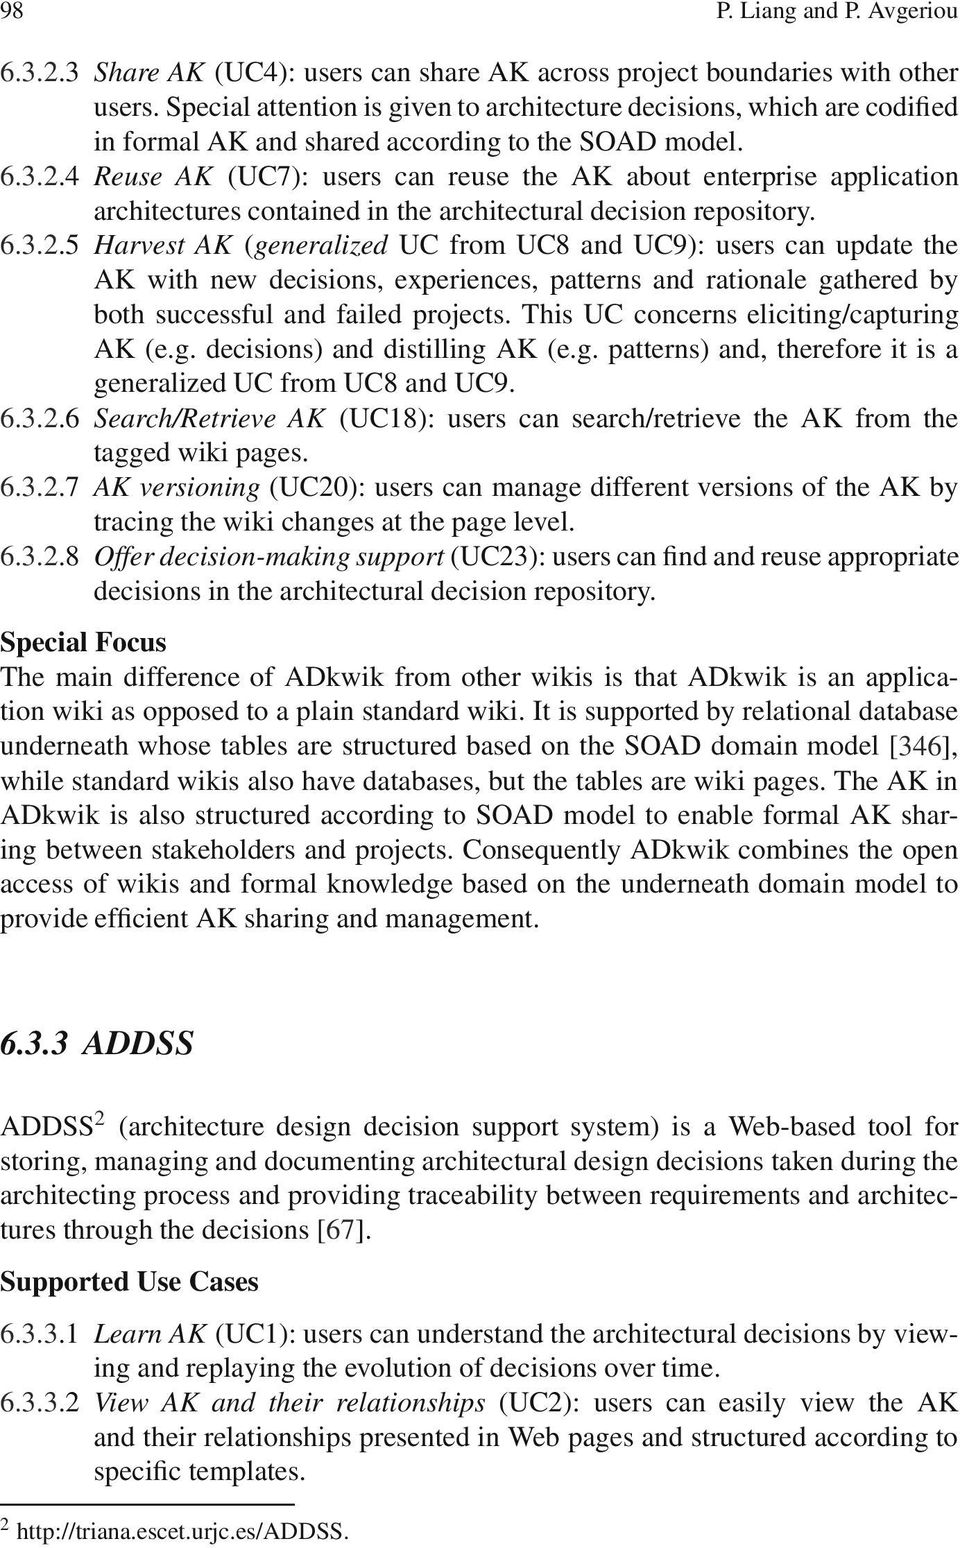 4 Reuse AK (UC7): users can reuse the AK about enterprise application architectures contained in the architectural decision repository. 6.3.2.